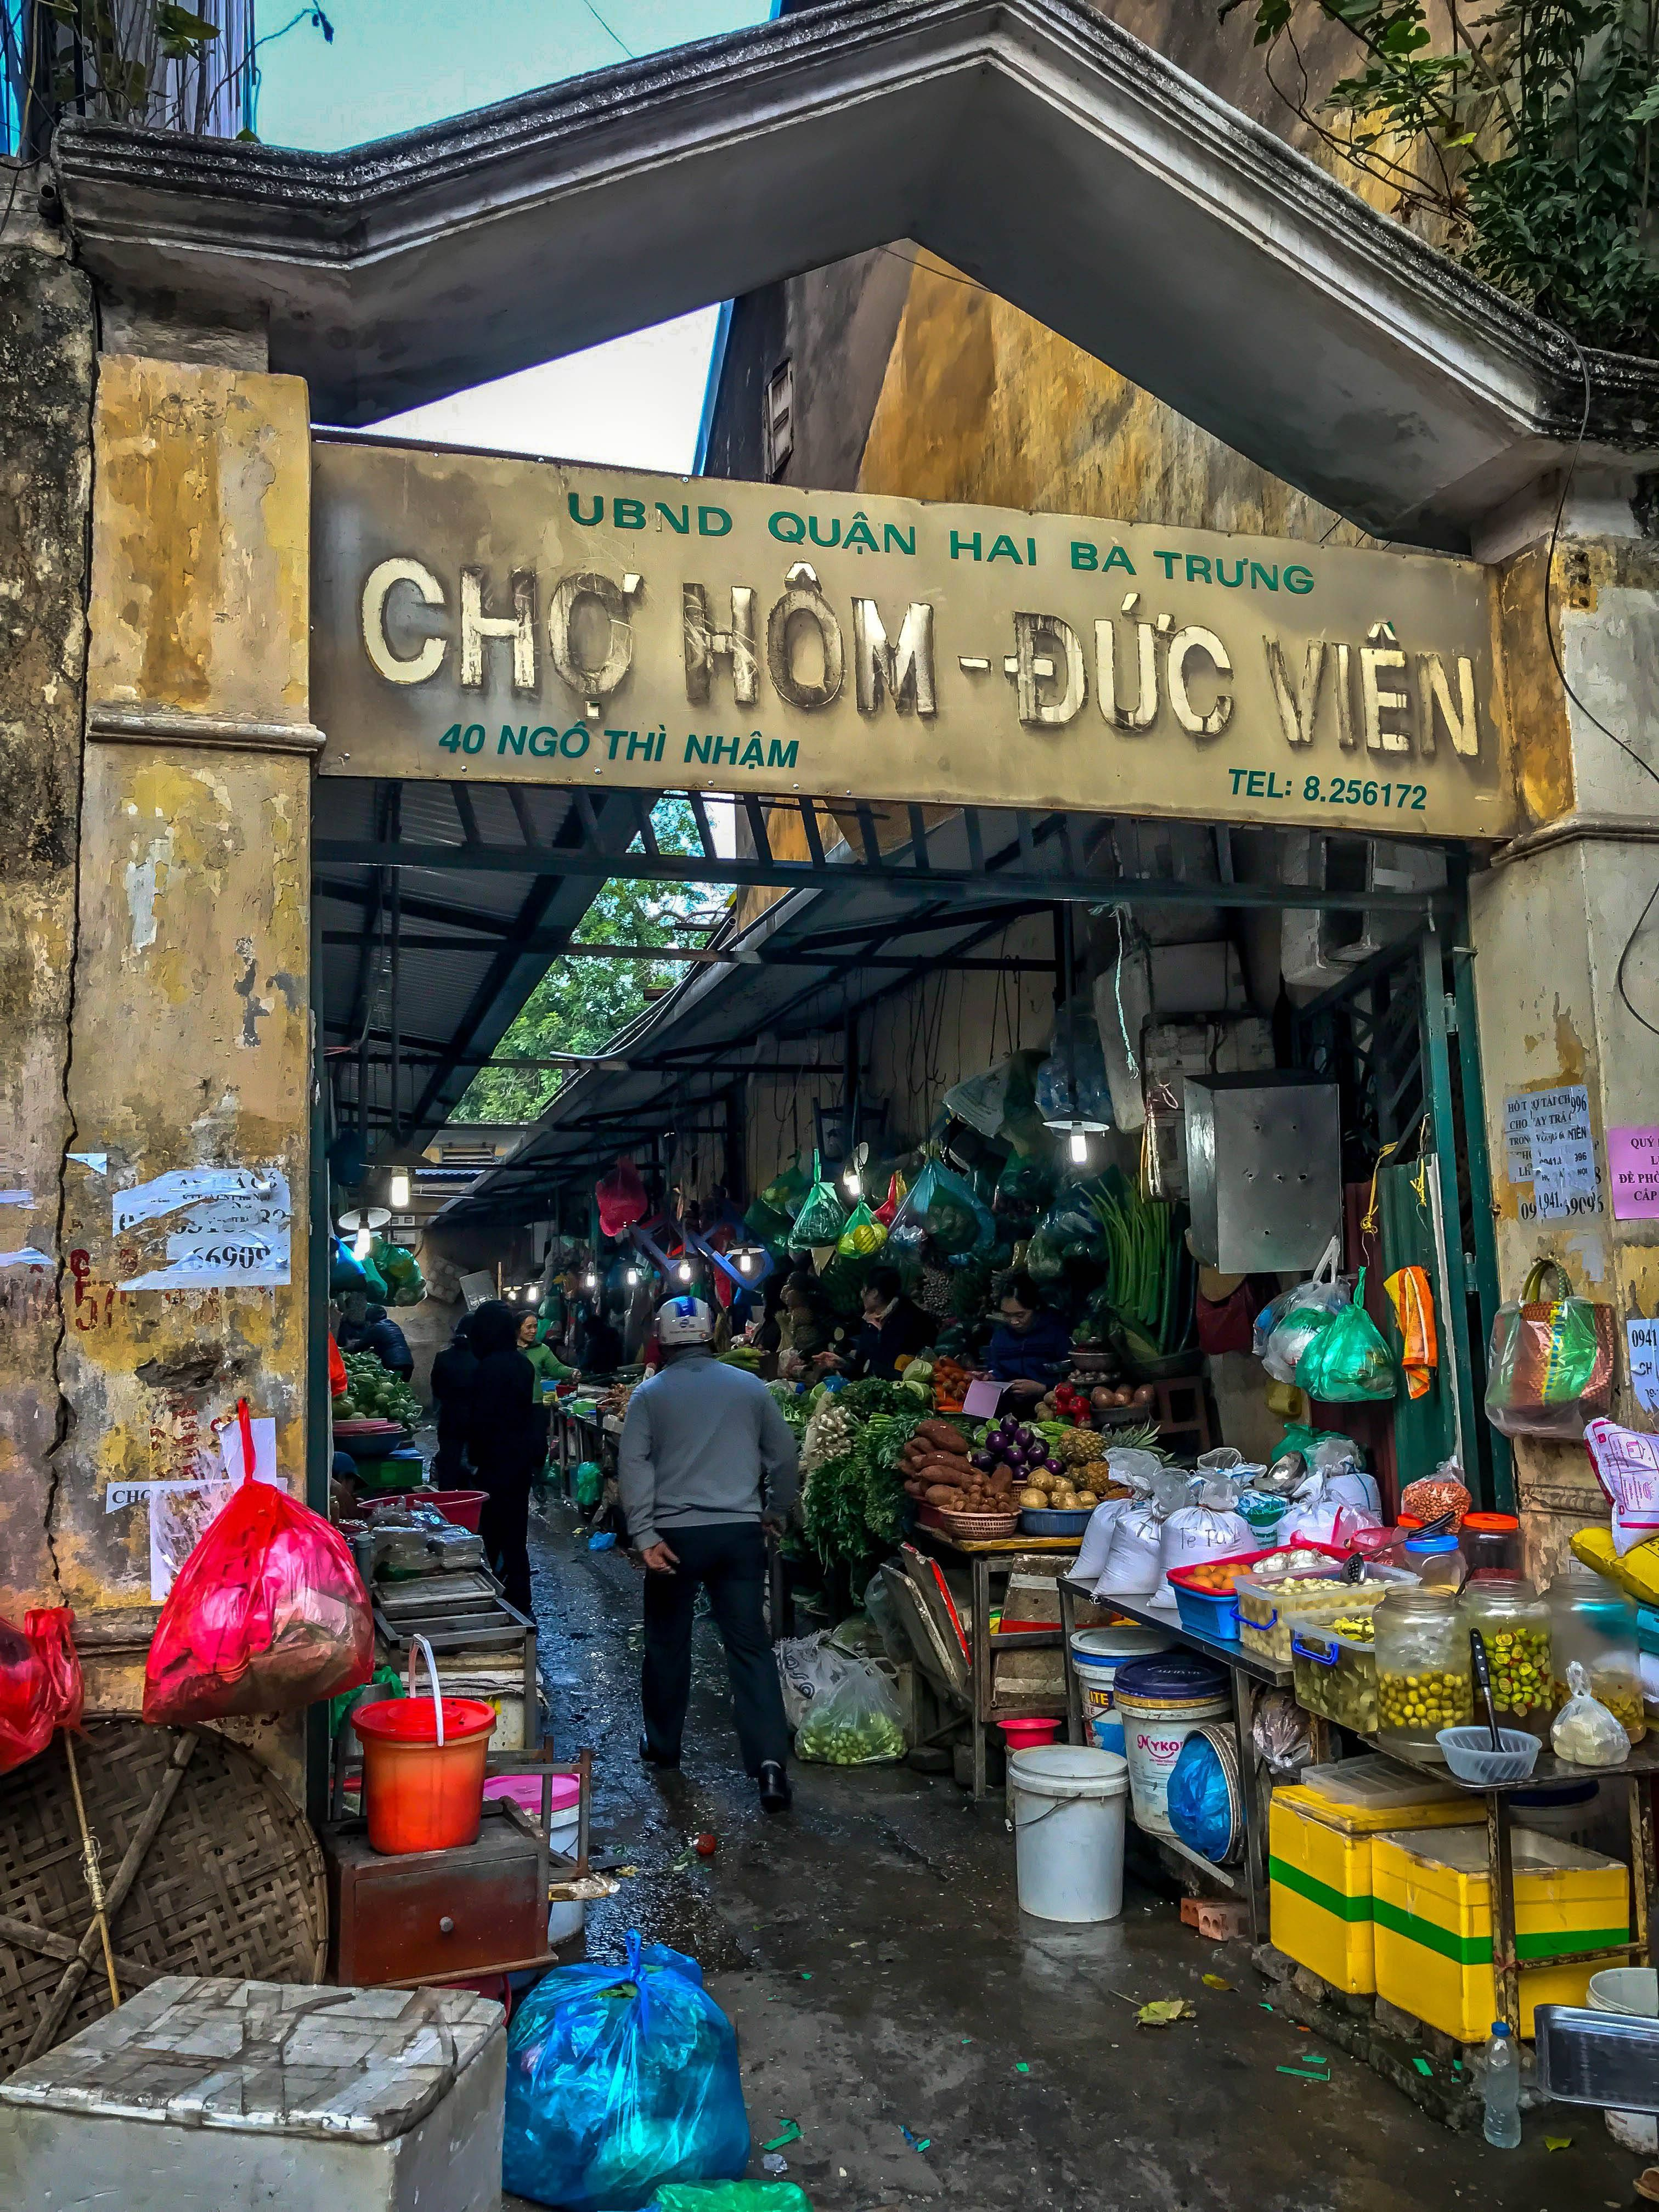 1 city 9 ways things to do in hanoi vietnam for every kind of rh pinterest com